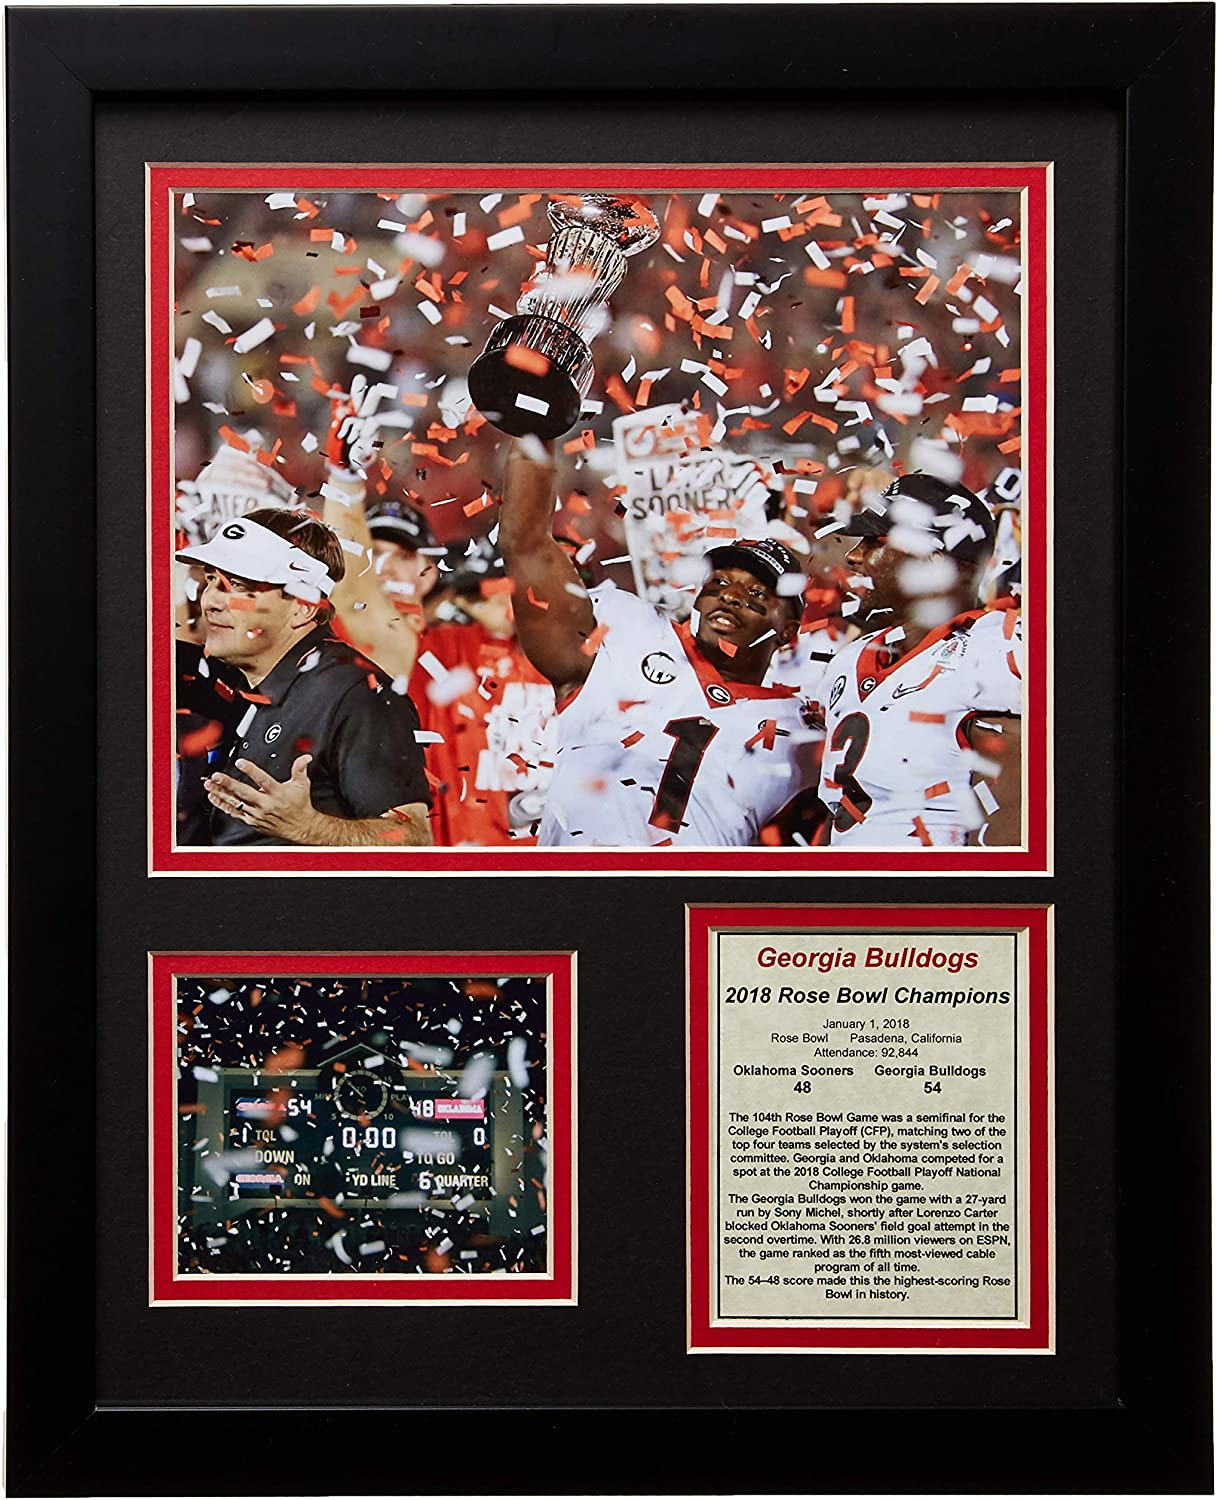 Legends Never Die UGA Georgia Bulldogs Rose Bowl Champions 2018 Collectible | Framed Photo Collage Wall Art Décor - 12